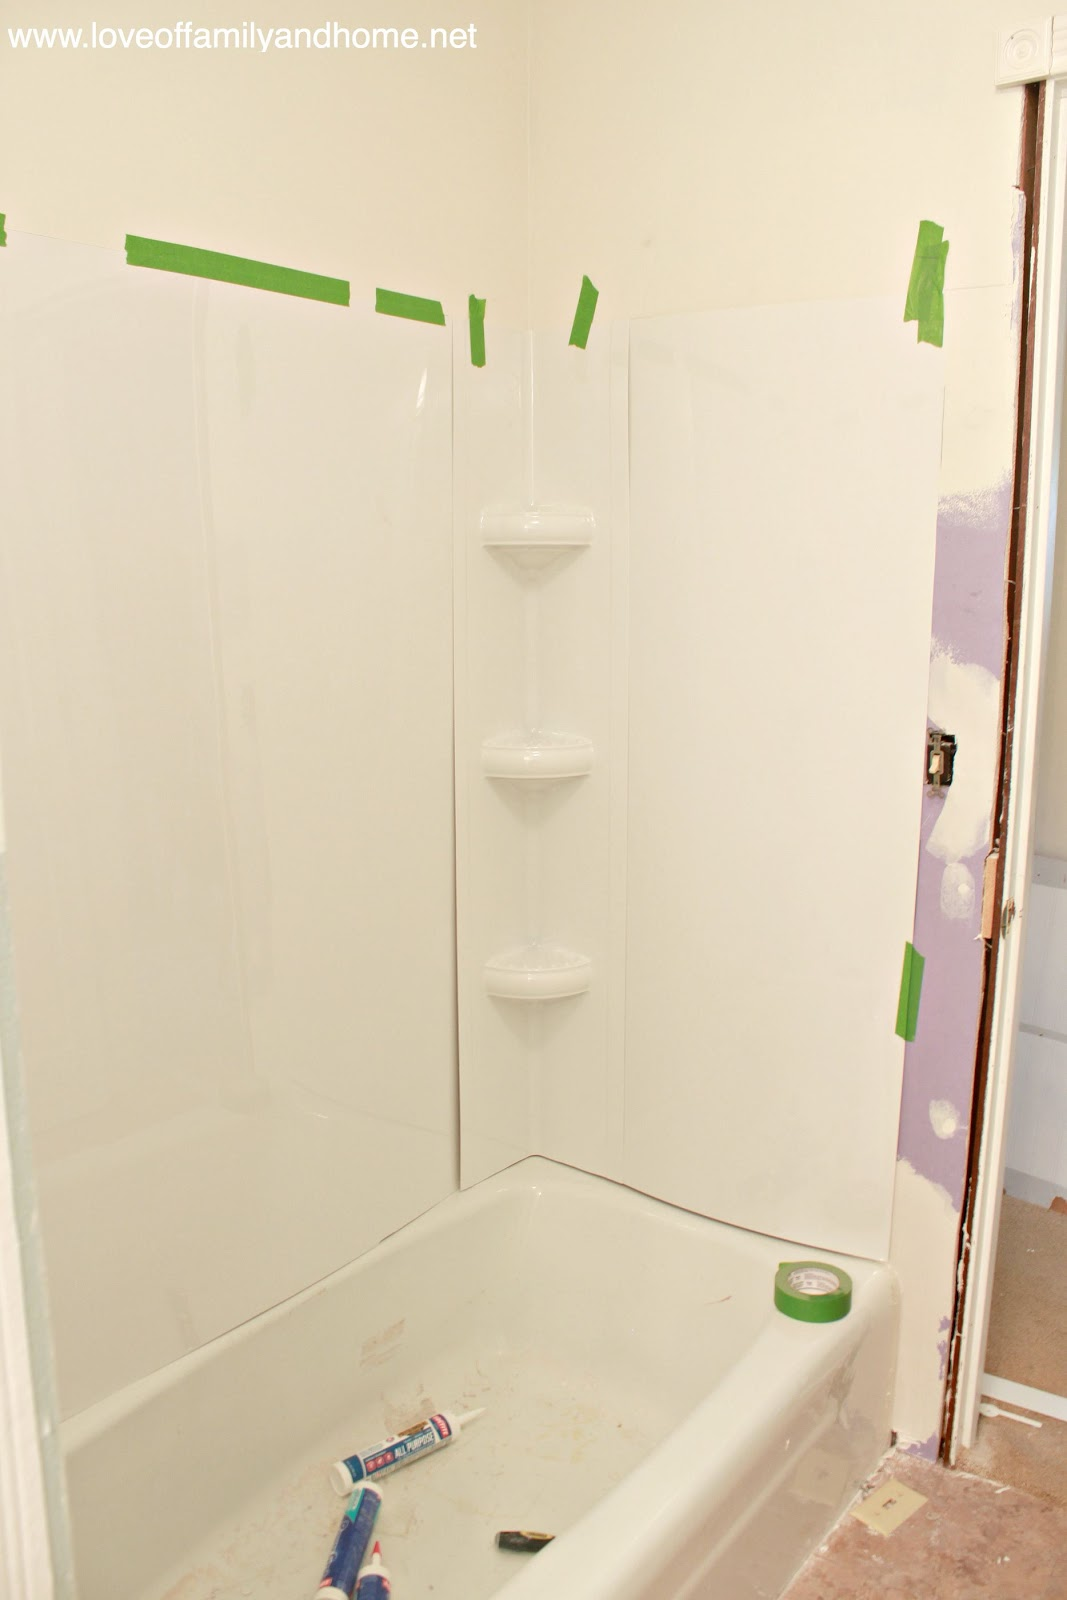 Shower Before & After with Tub Surround Tutorial - Love of Family & Home